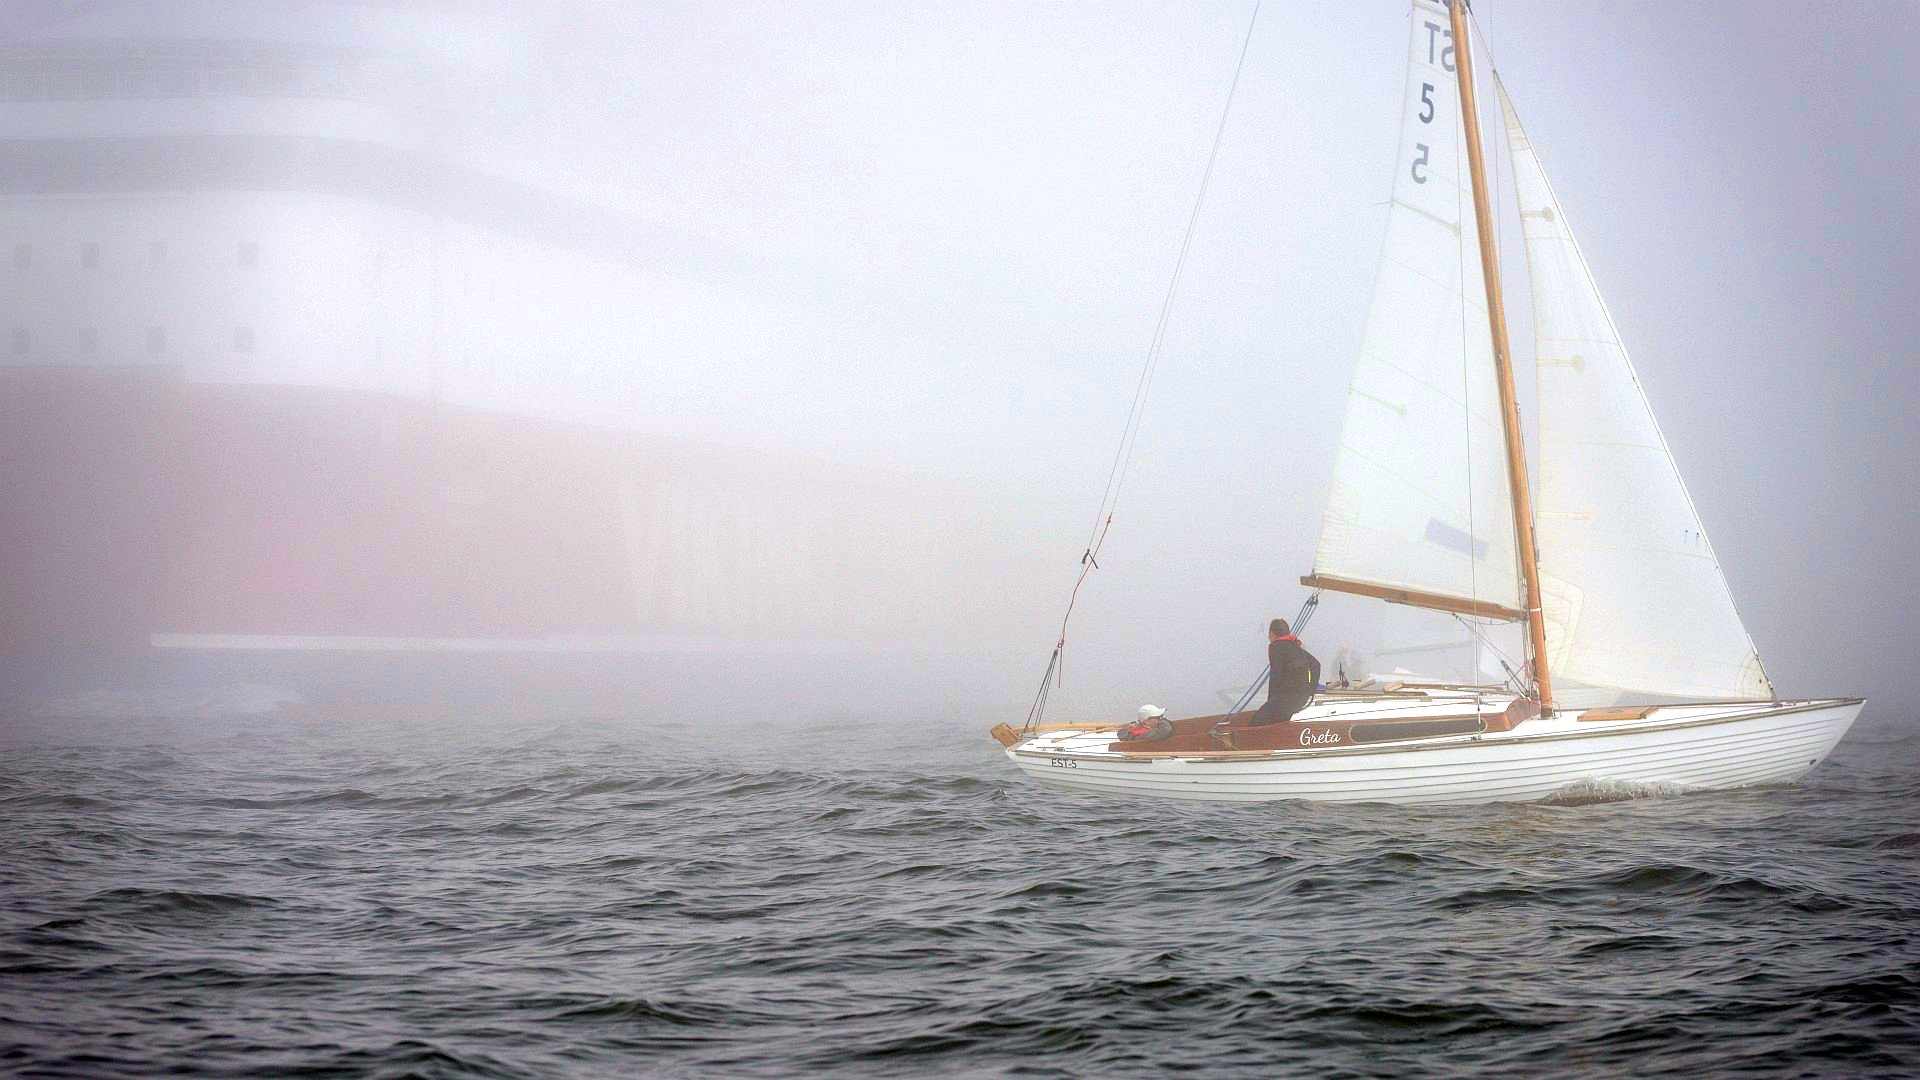 The first day at the Nordic Folkboat Finnish Championship started in heavy sea mist. Practical visibility was less than 200 meters, so first time ever I had to start by driving my RIB to the organizers (NJK) harbour and ask where the boats are. Luckily one Race Committee motor boat with Pata and Robbie happened […]